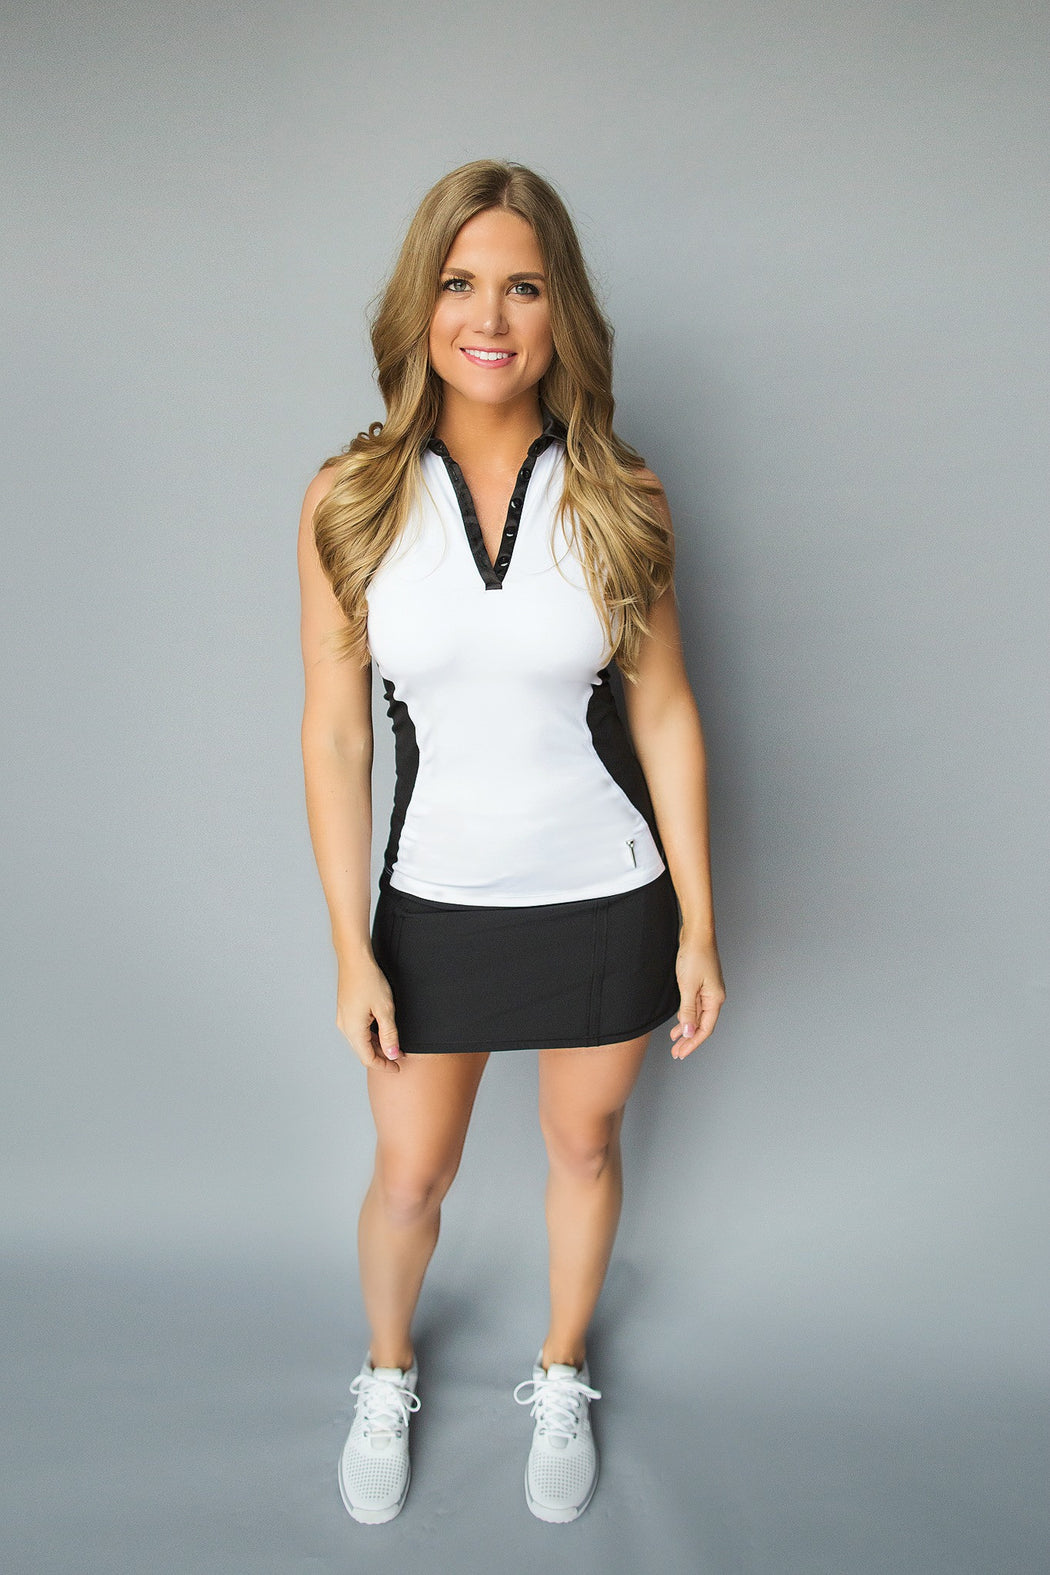 Illusion Golf Polo - Black and White - FlirTee Golf